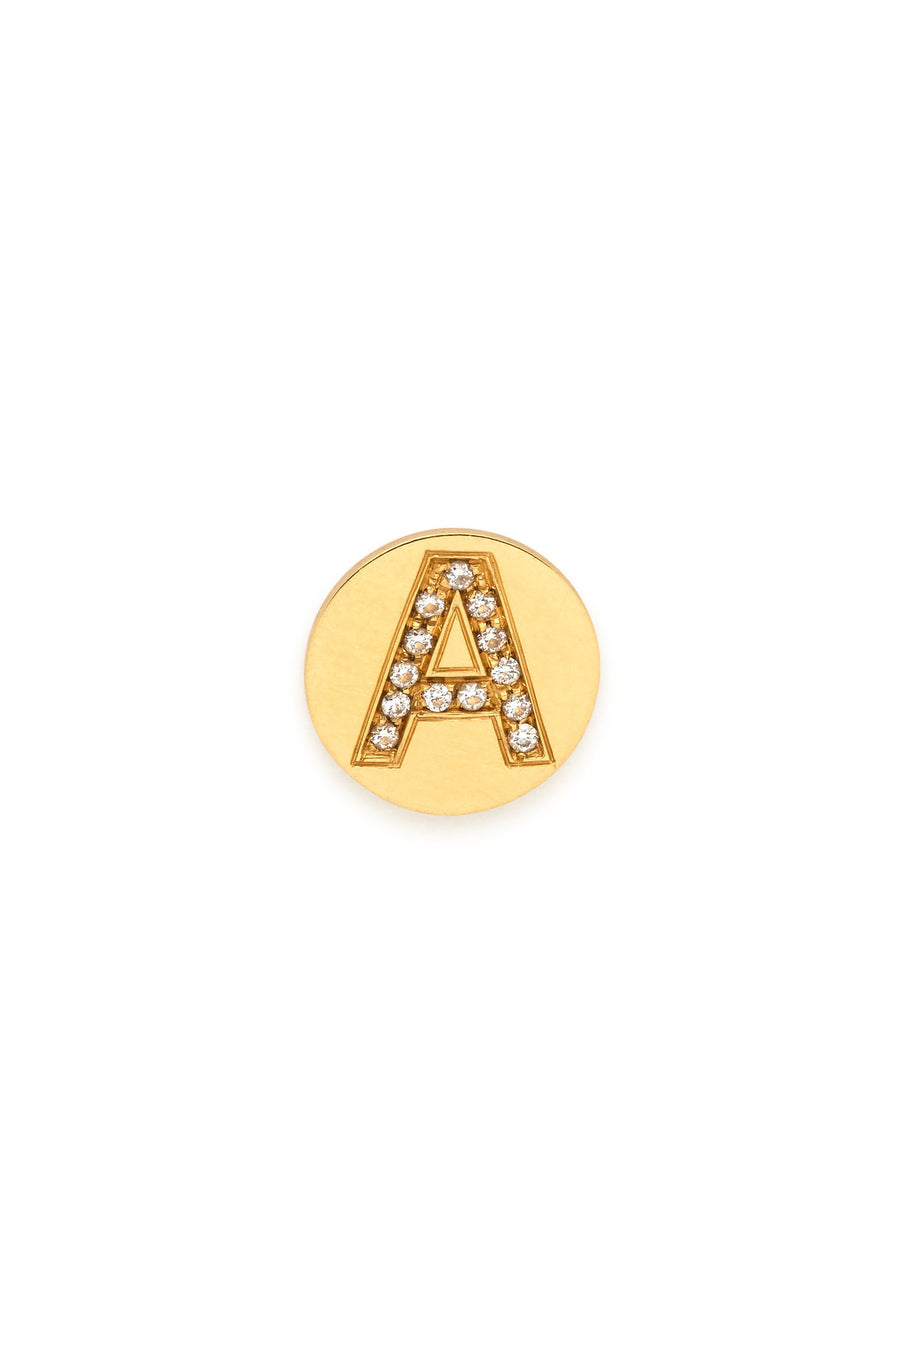 18K Gold & Diamonds Initial Magnetic Charm - A